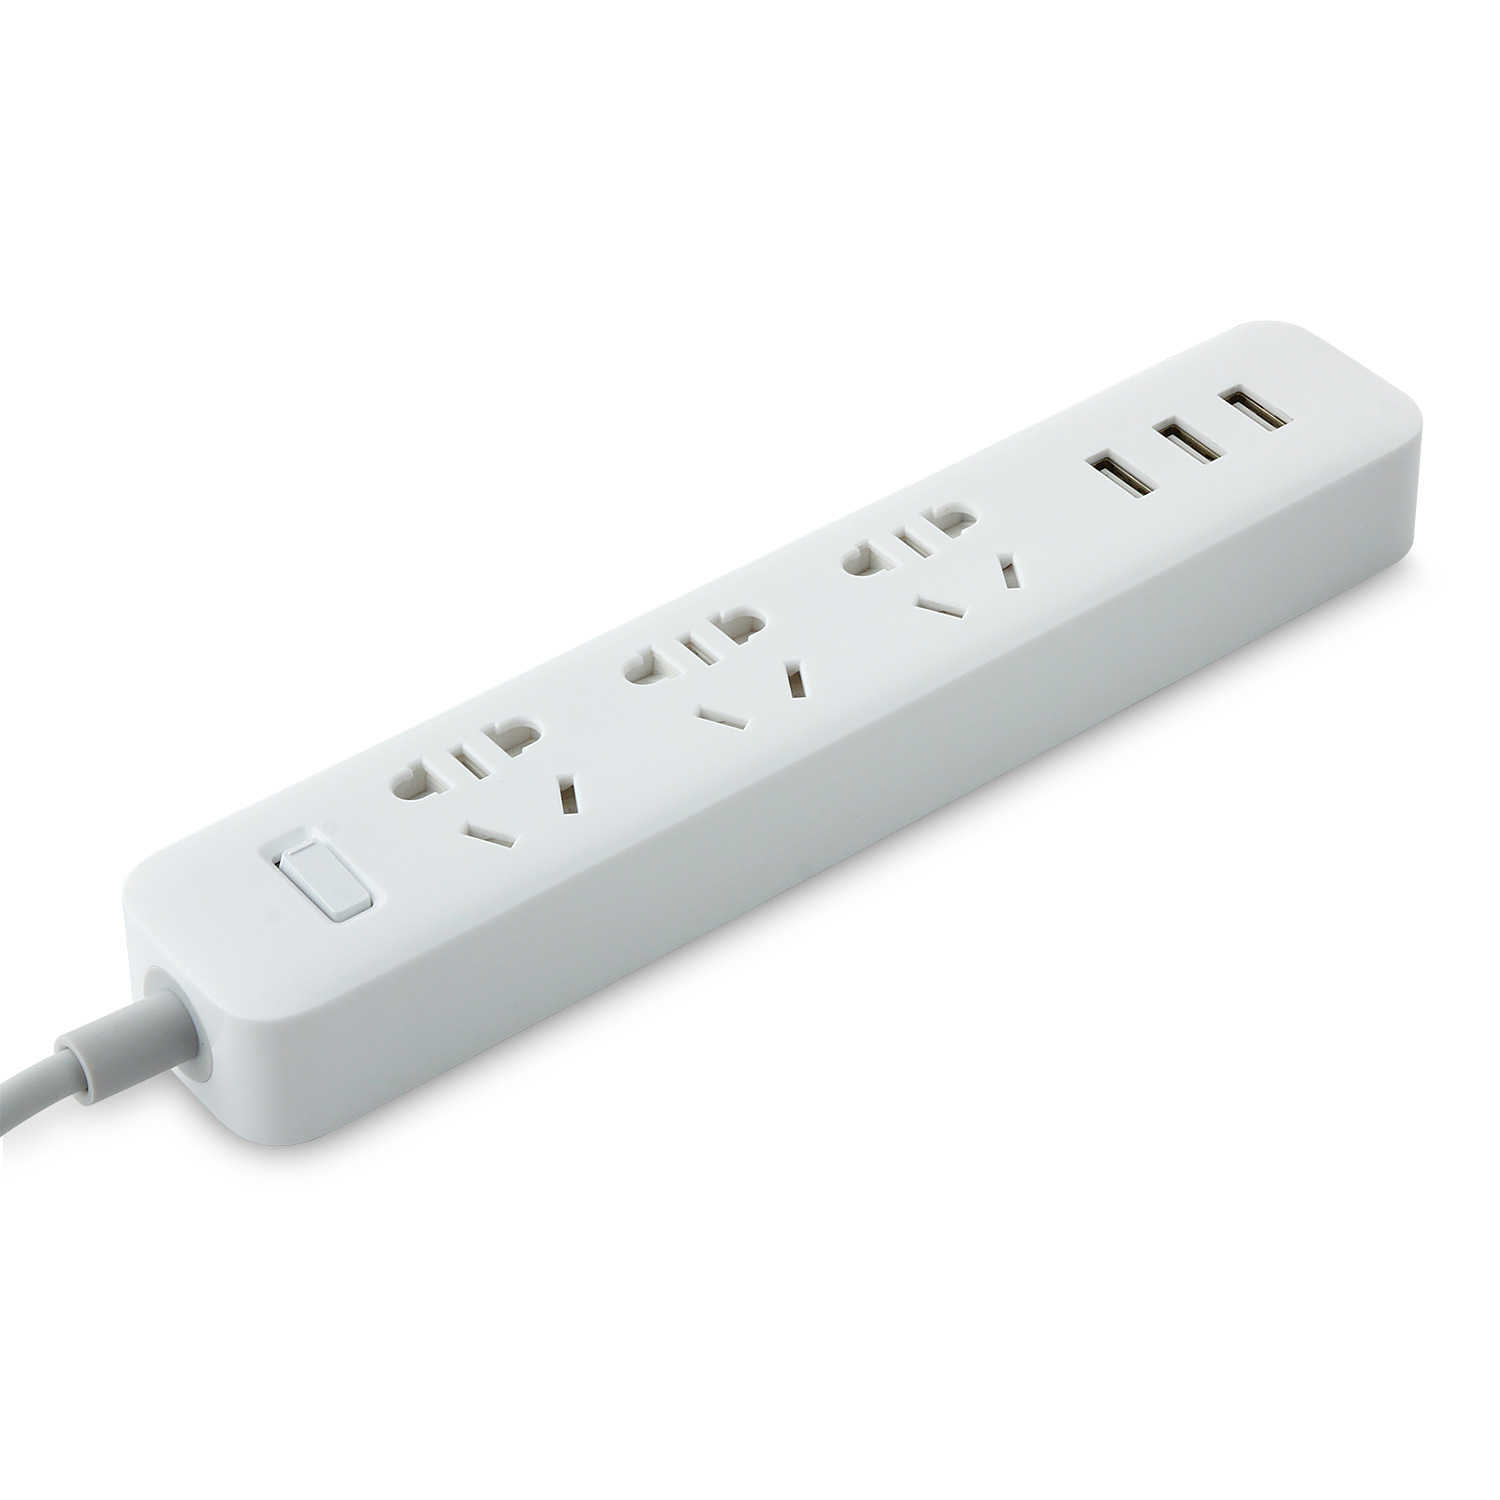 EU Plug XIAOMI Power Strip Outlet Socket Plug 3 USB Charging Port 5V 2.1A